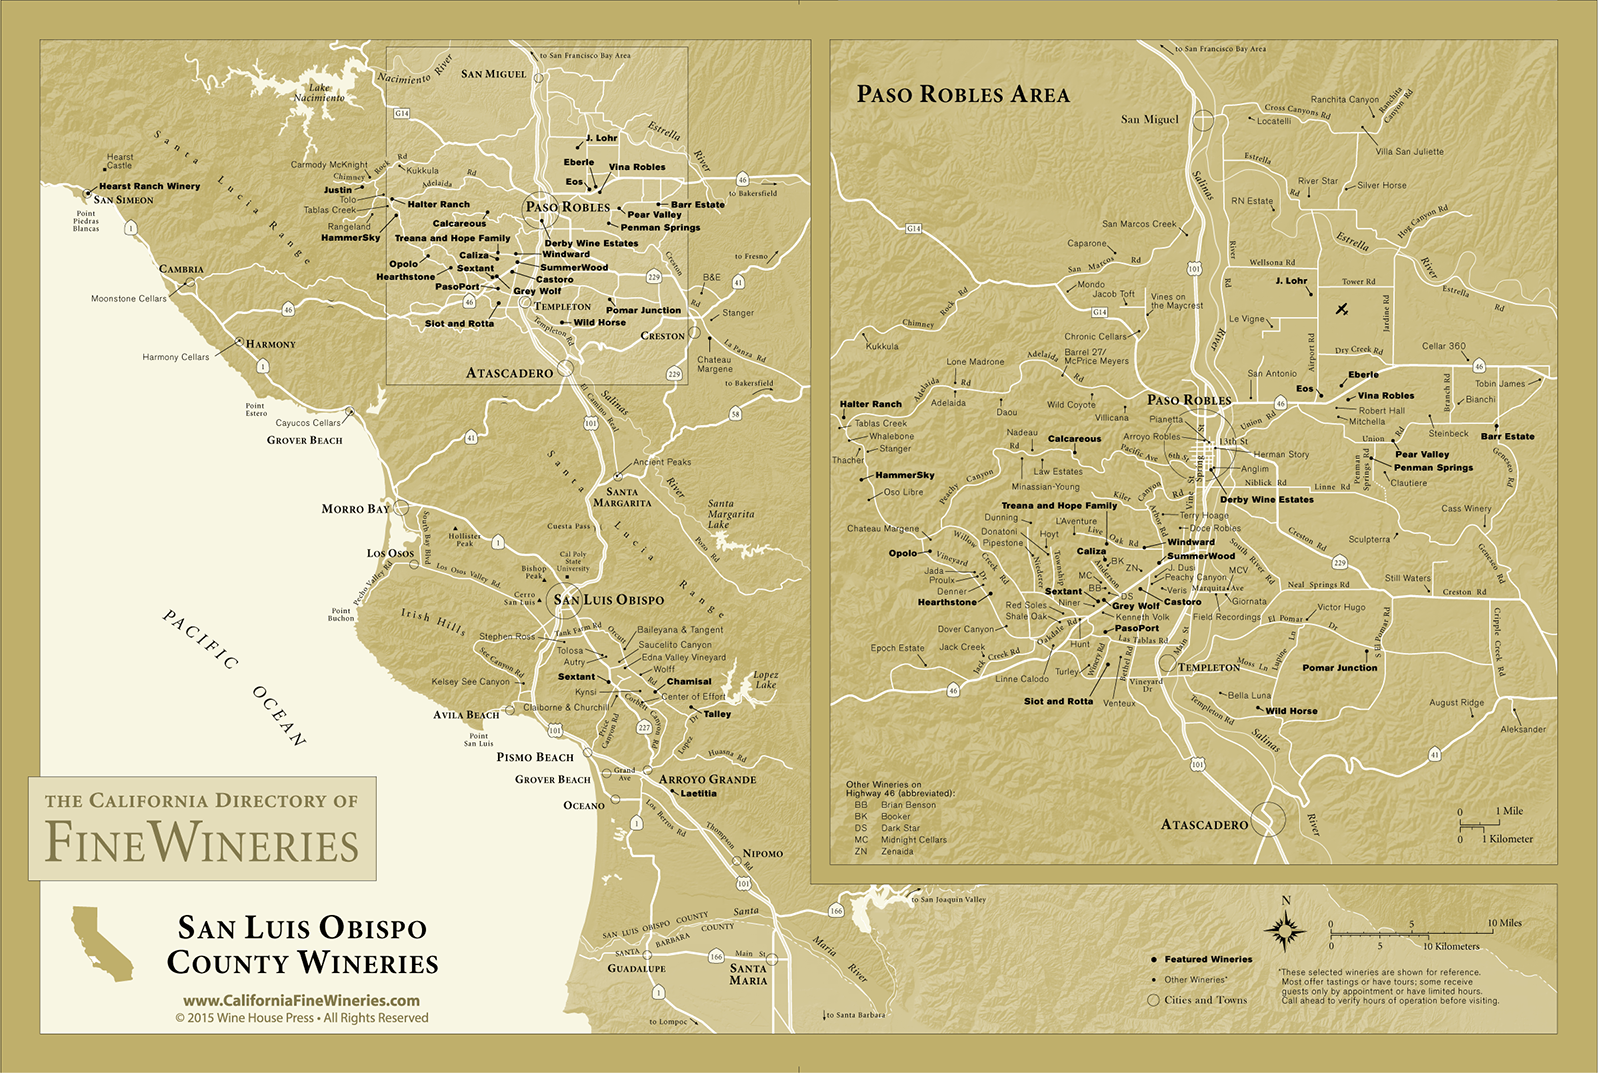 napa valley winery map with Paso Robles Winery Map on Mendoza besides Paso Robles Winery Map as well Etude Winery Visit Napa Valley Carneros as well Celebrate California Wine Month Along The Ca Highway 1 Discovery Route likewise Yosemite Park Napa Valley.